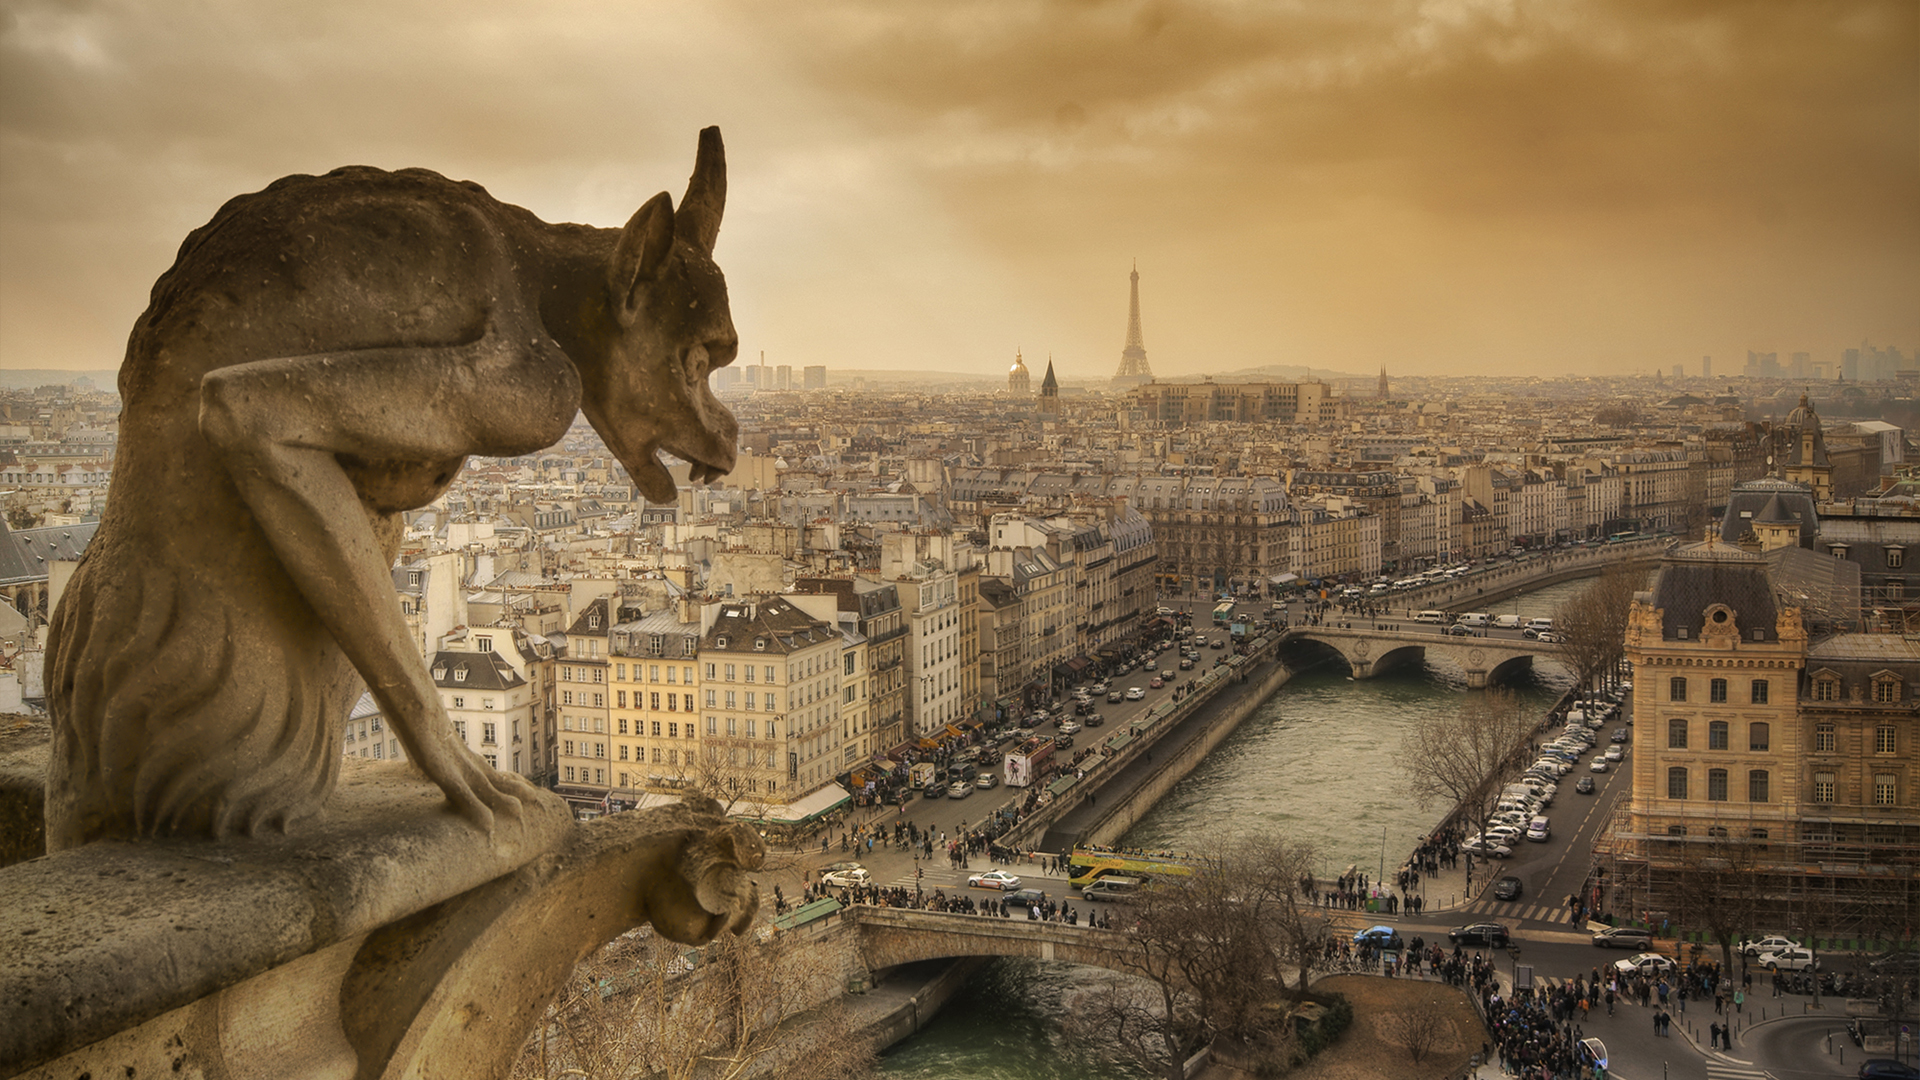 Gargoyle Wallpapers Hd Resolution For Free Wallpaper Notre Dame 1920x1080 Download Hd Wallpaper Wallpapertip